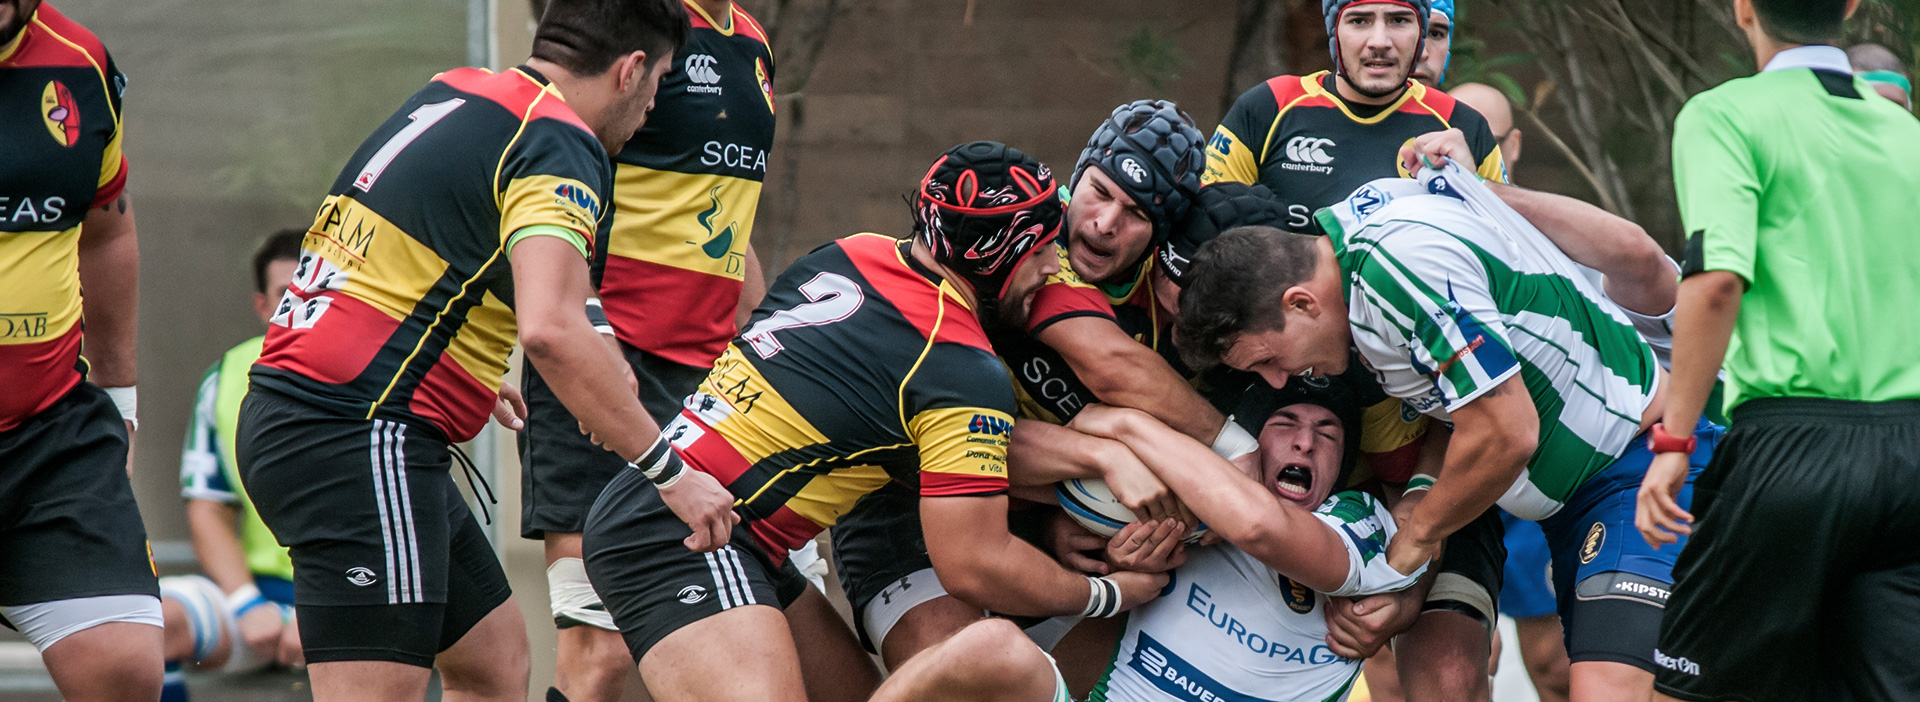 Cus Milano Rugby vs Rugby Capoterra